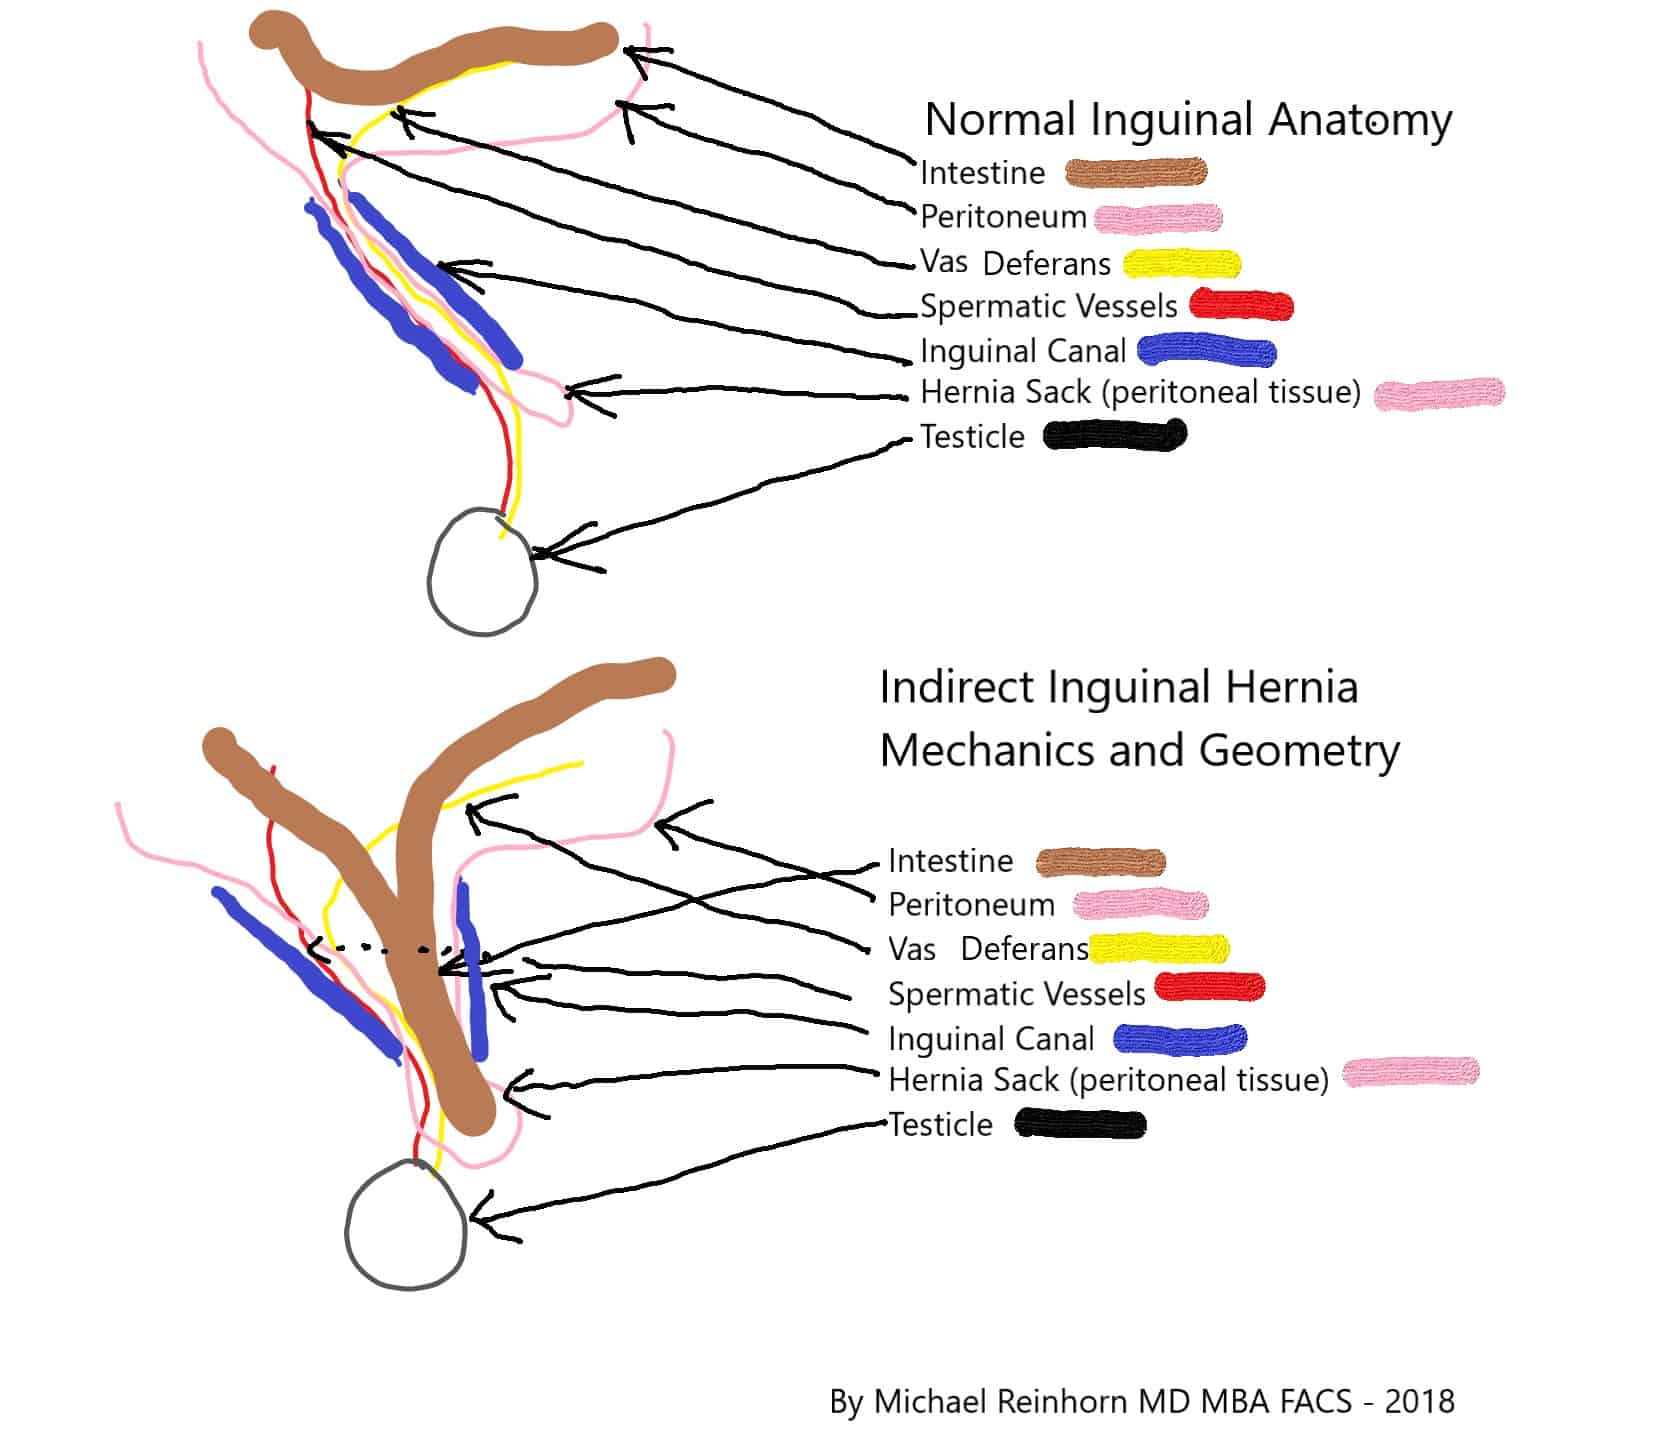 Direct hernia anatomy